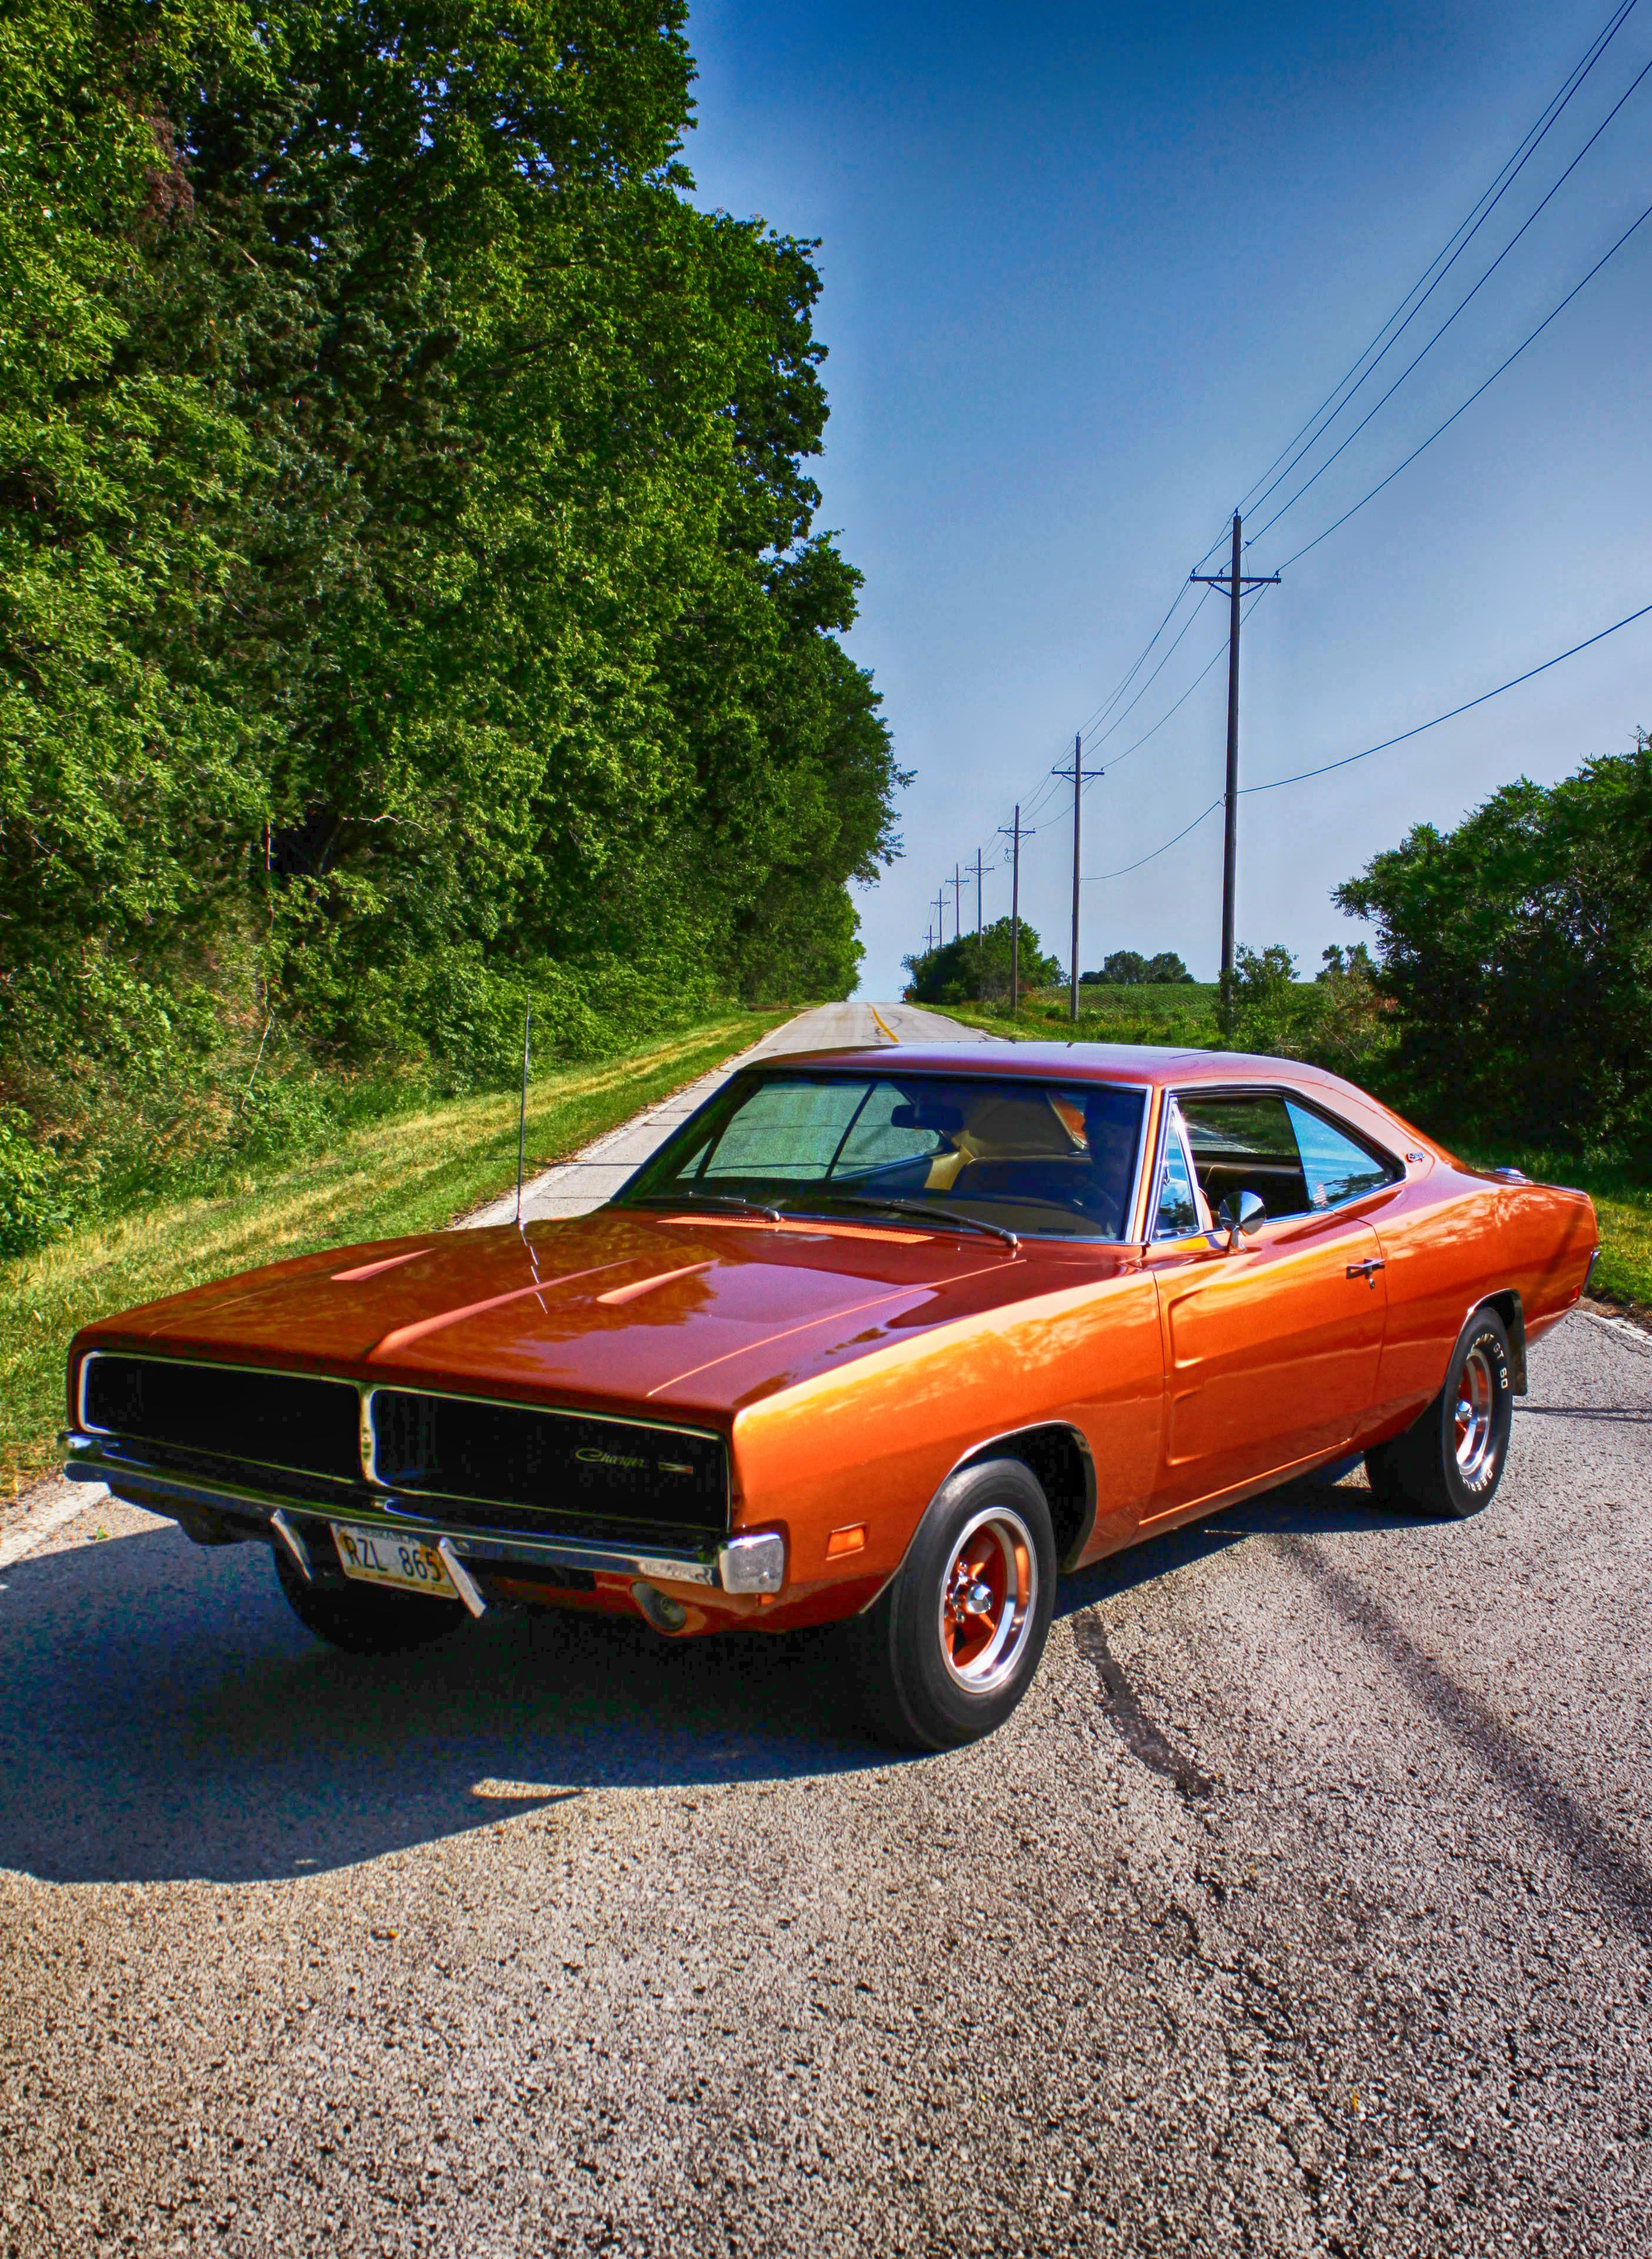 1969 Dodge Charger  Sixties Cars  Pinterest  Car Dream cars